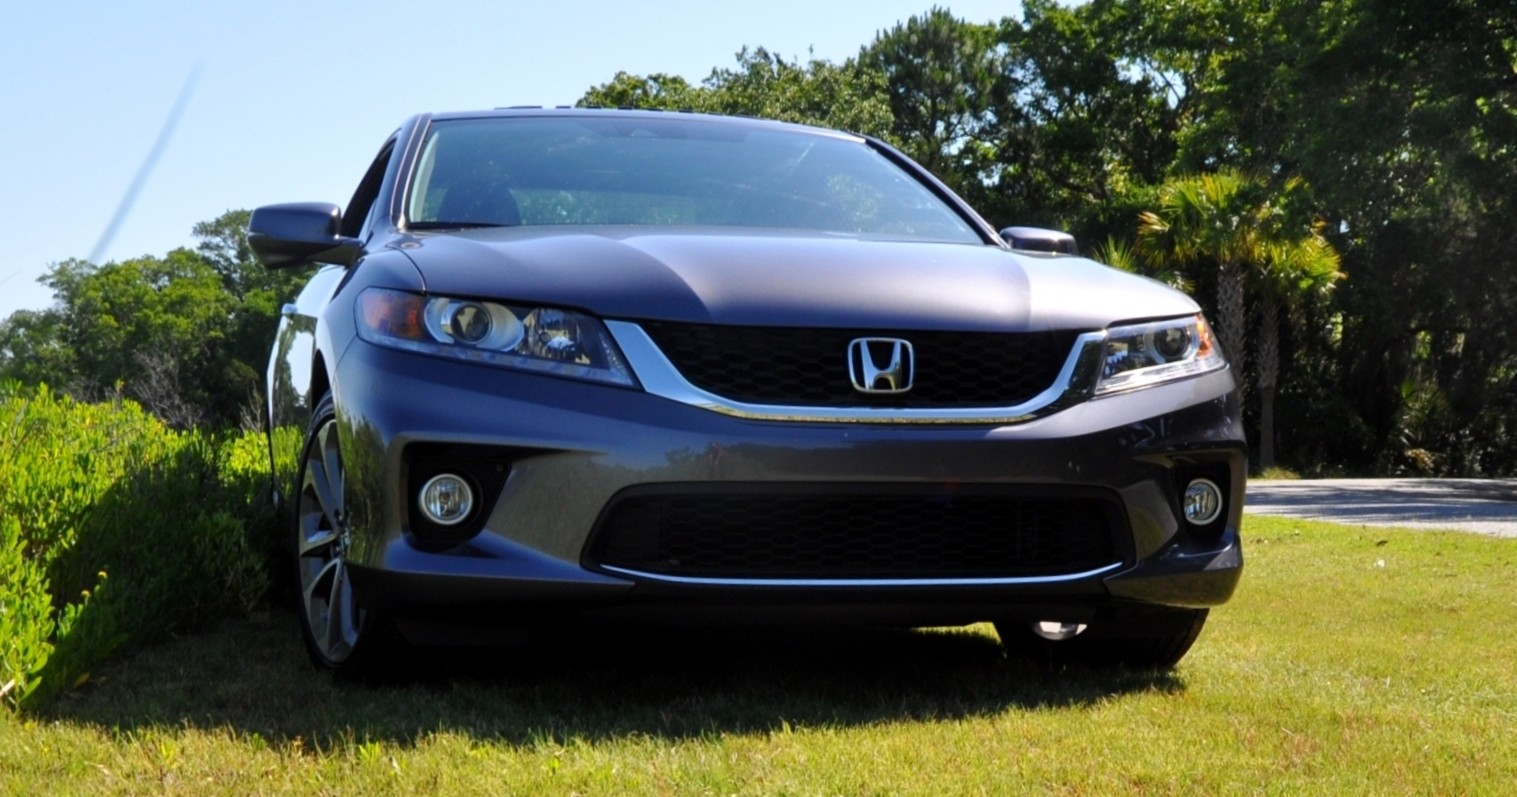 mega road test review 2014 honda accord coupe v6 ex l navi with six speed manual. Black Bedroom Furniture Sets. Home Design Ideas